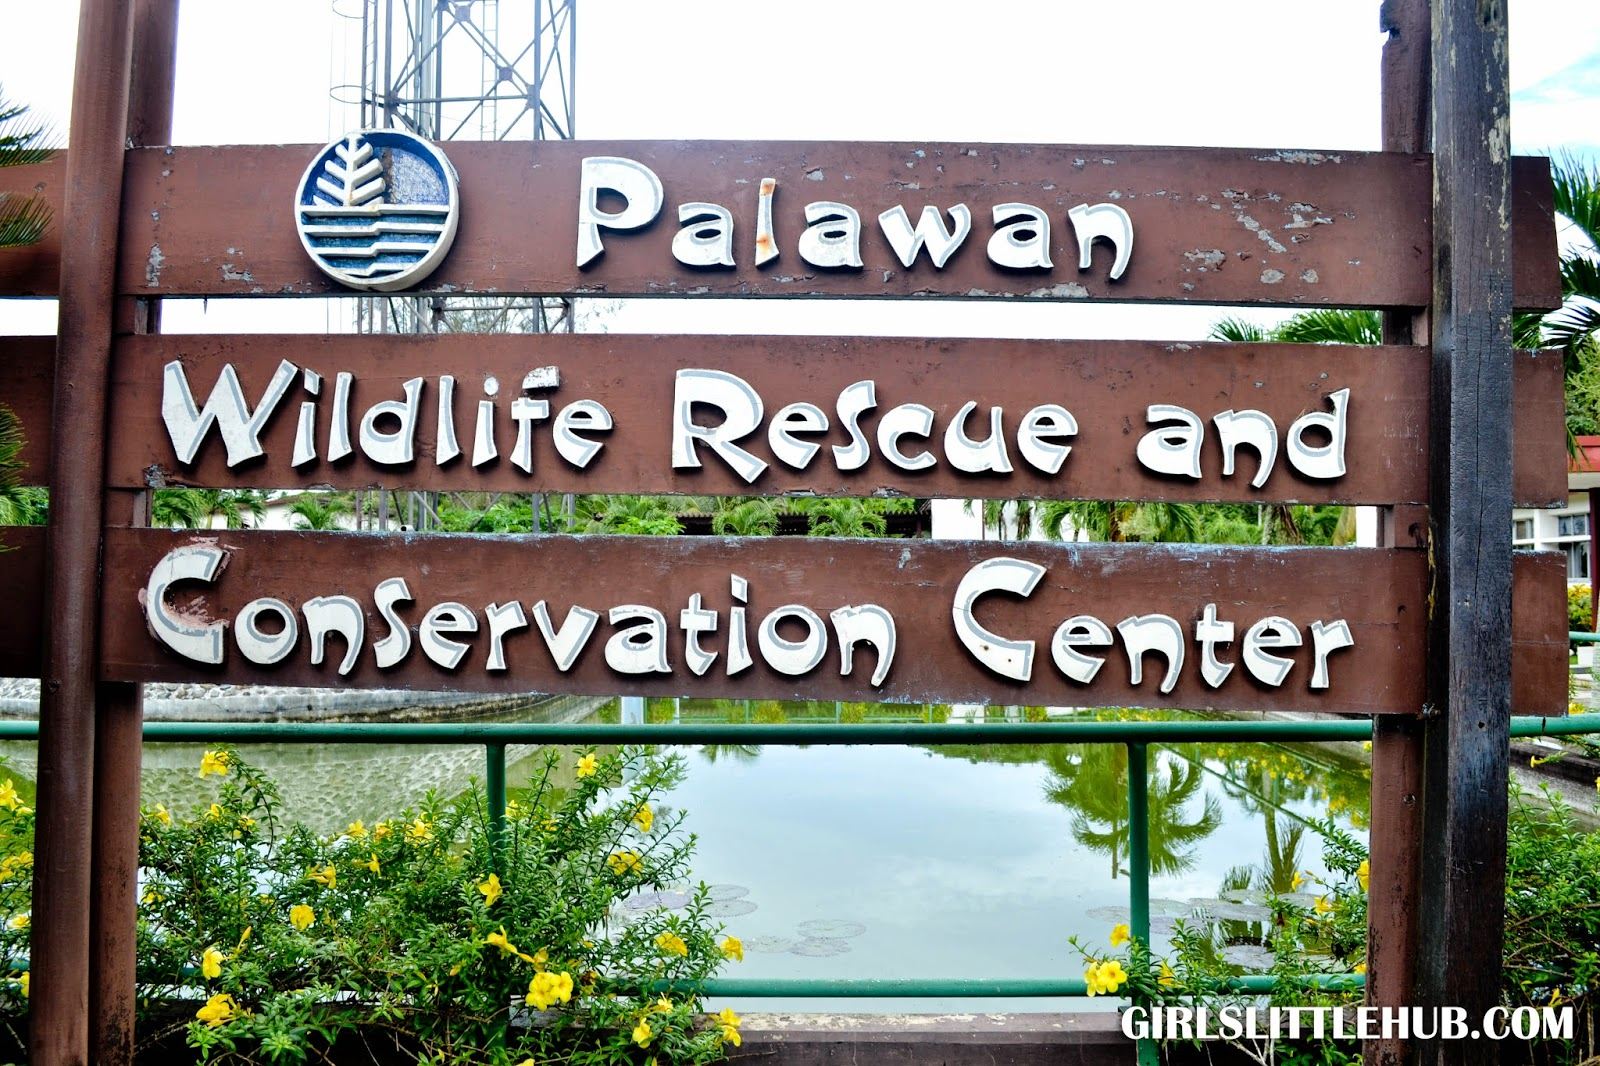 Palawan Wildlife Rescue & Conservation Center Puerto Princesa, Girls Little Hub - Blog by Tayme Canencia: Palawan Wildlife Rescue ...